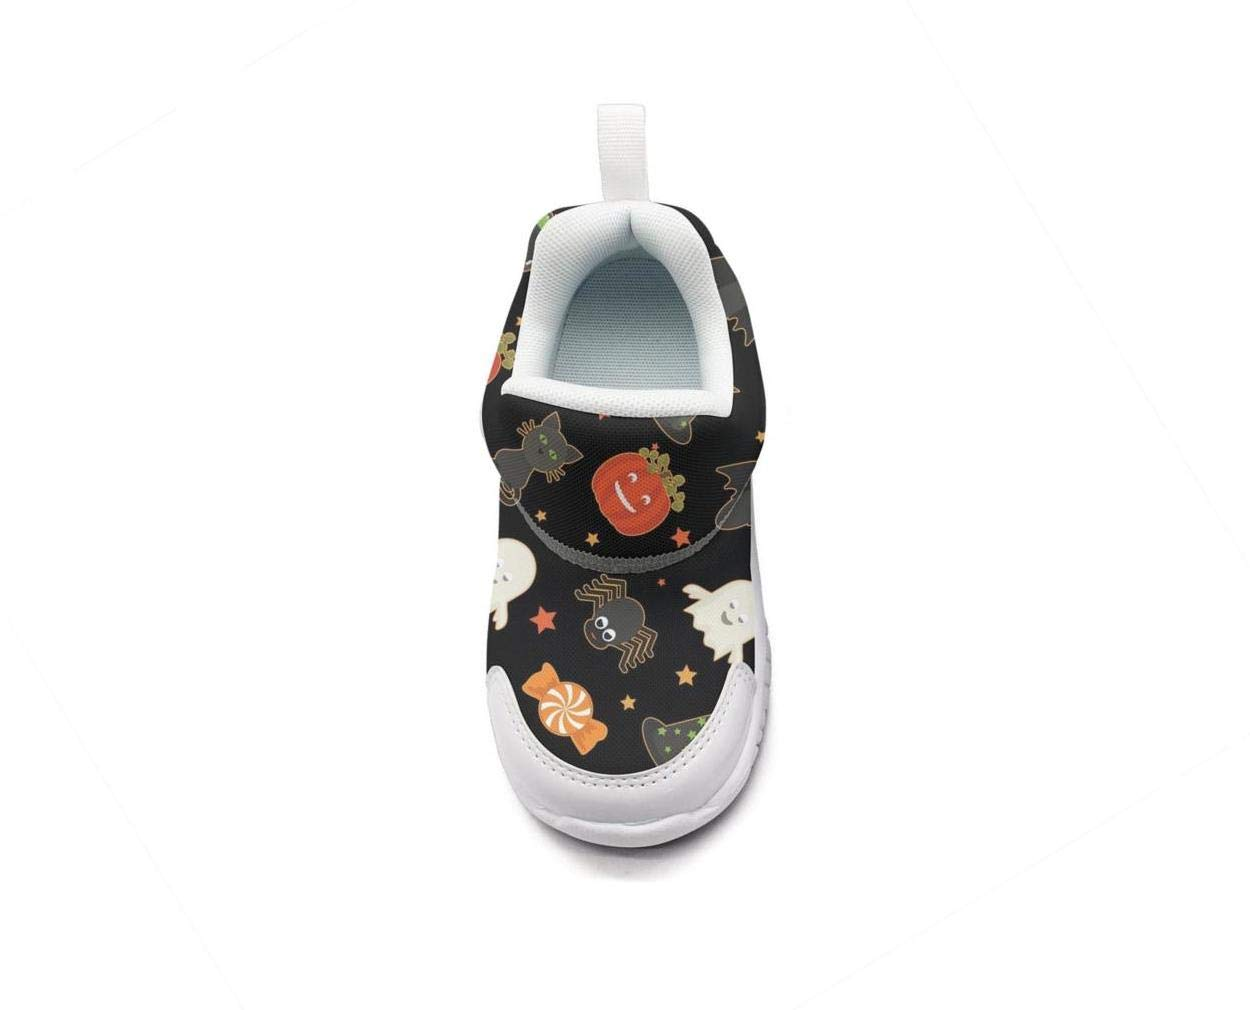 ONEYUAN Children Halloween Candy Skull cat Pumpkin Black Kid Casual Lightweight Sport Shoes Sneakers Walking Athletic Shoes